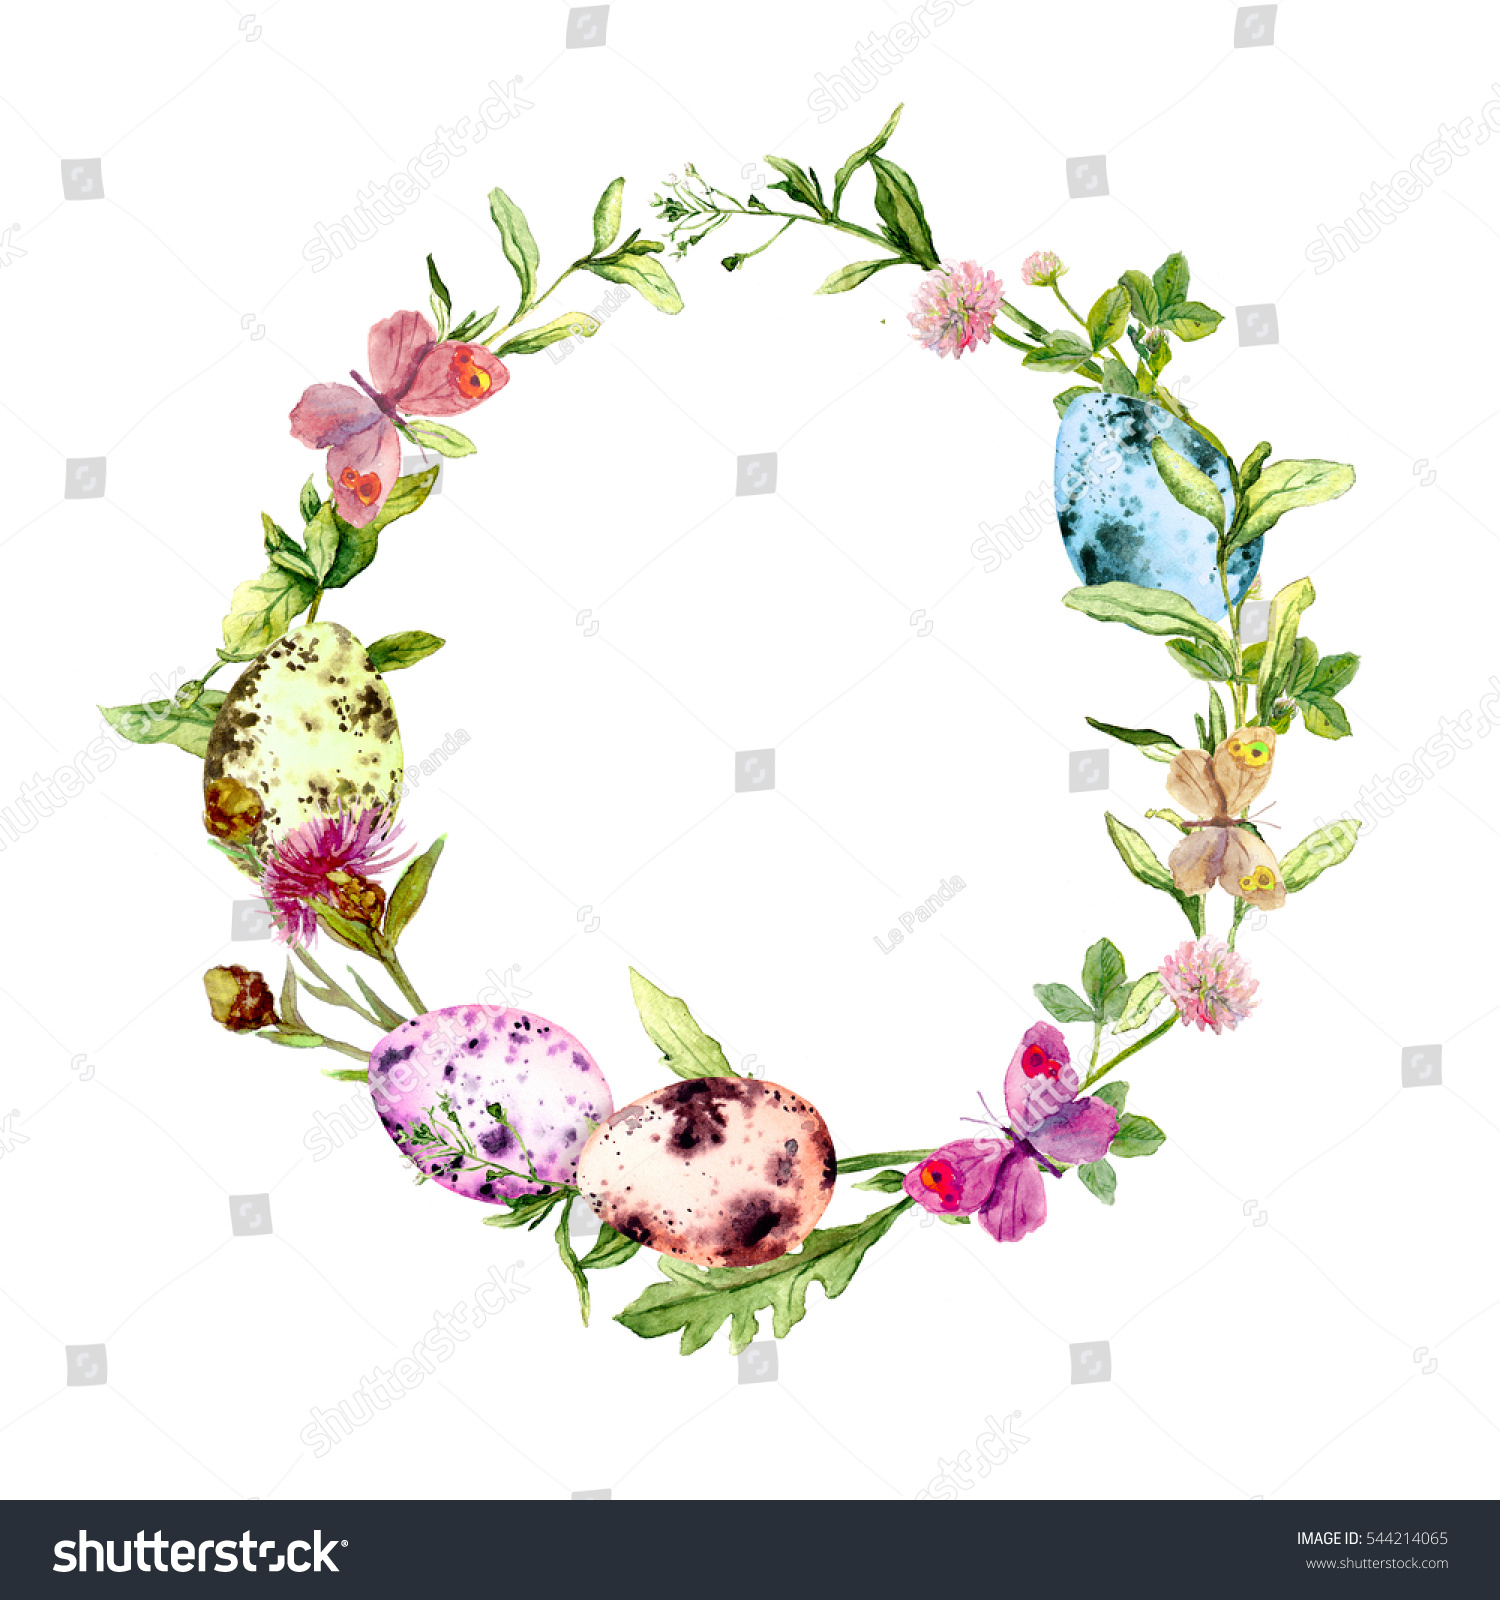 Easter Wreath With Eggs In Grass And Flowers Circle Border Watercolor 544214065